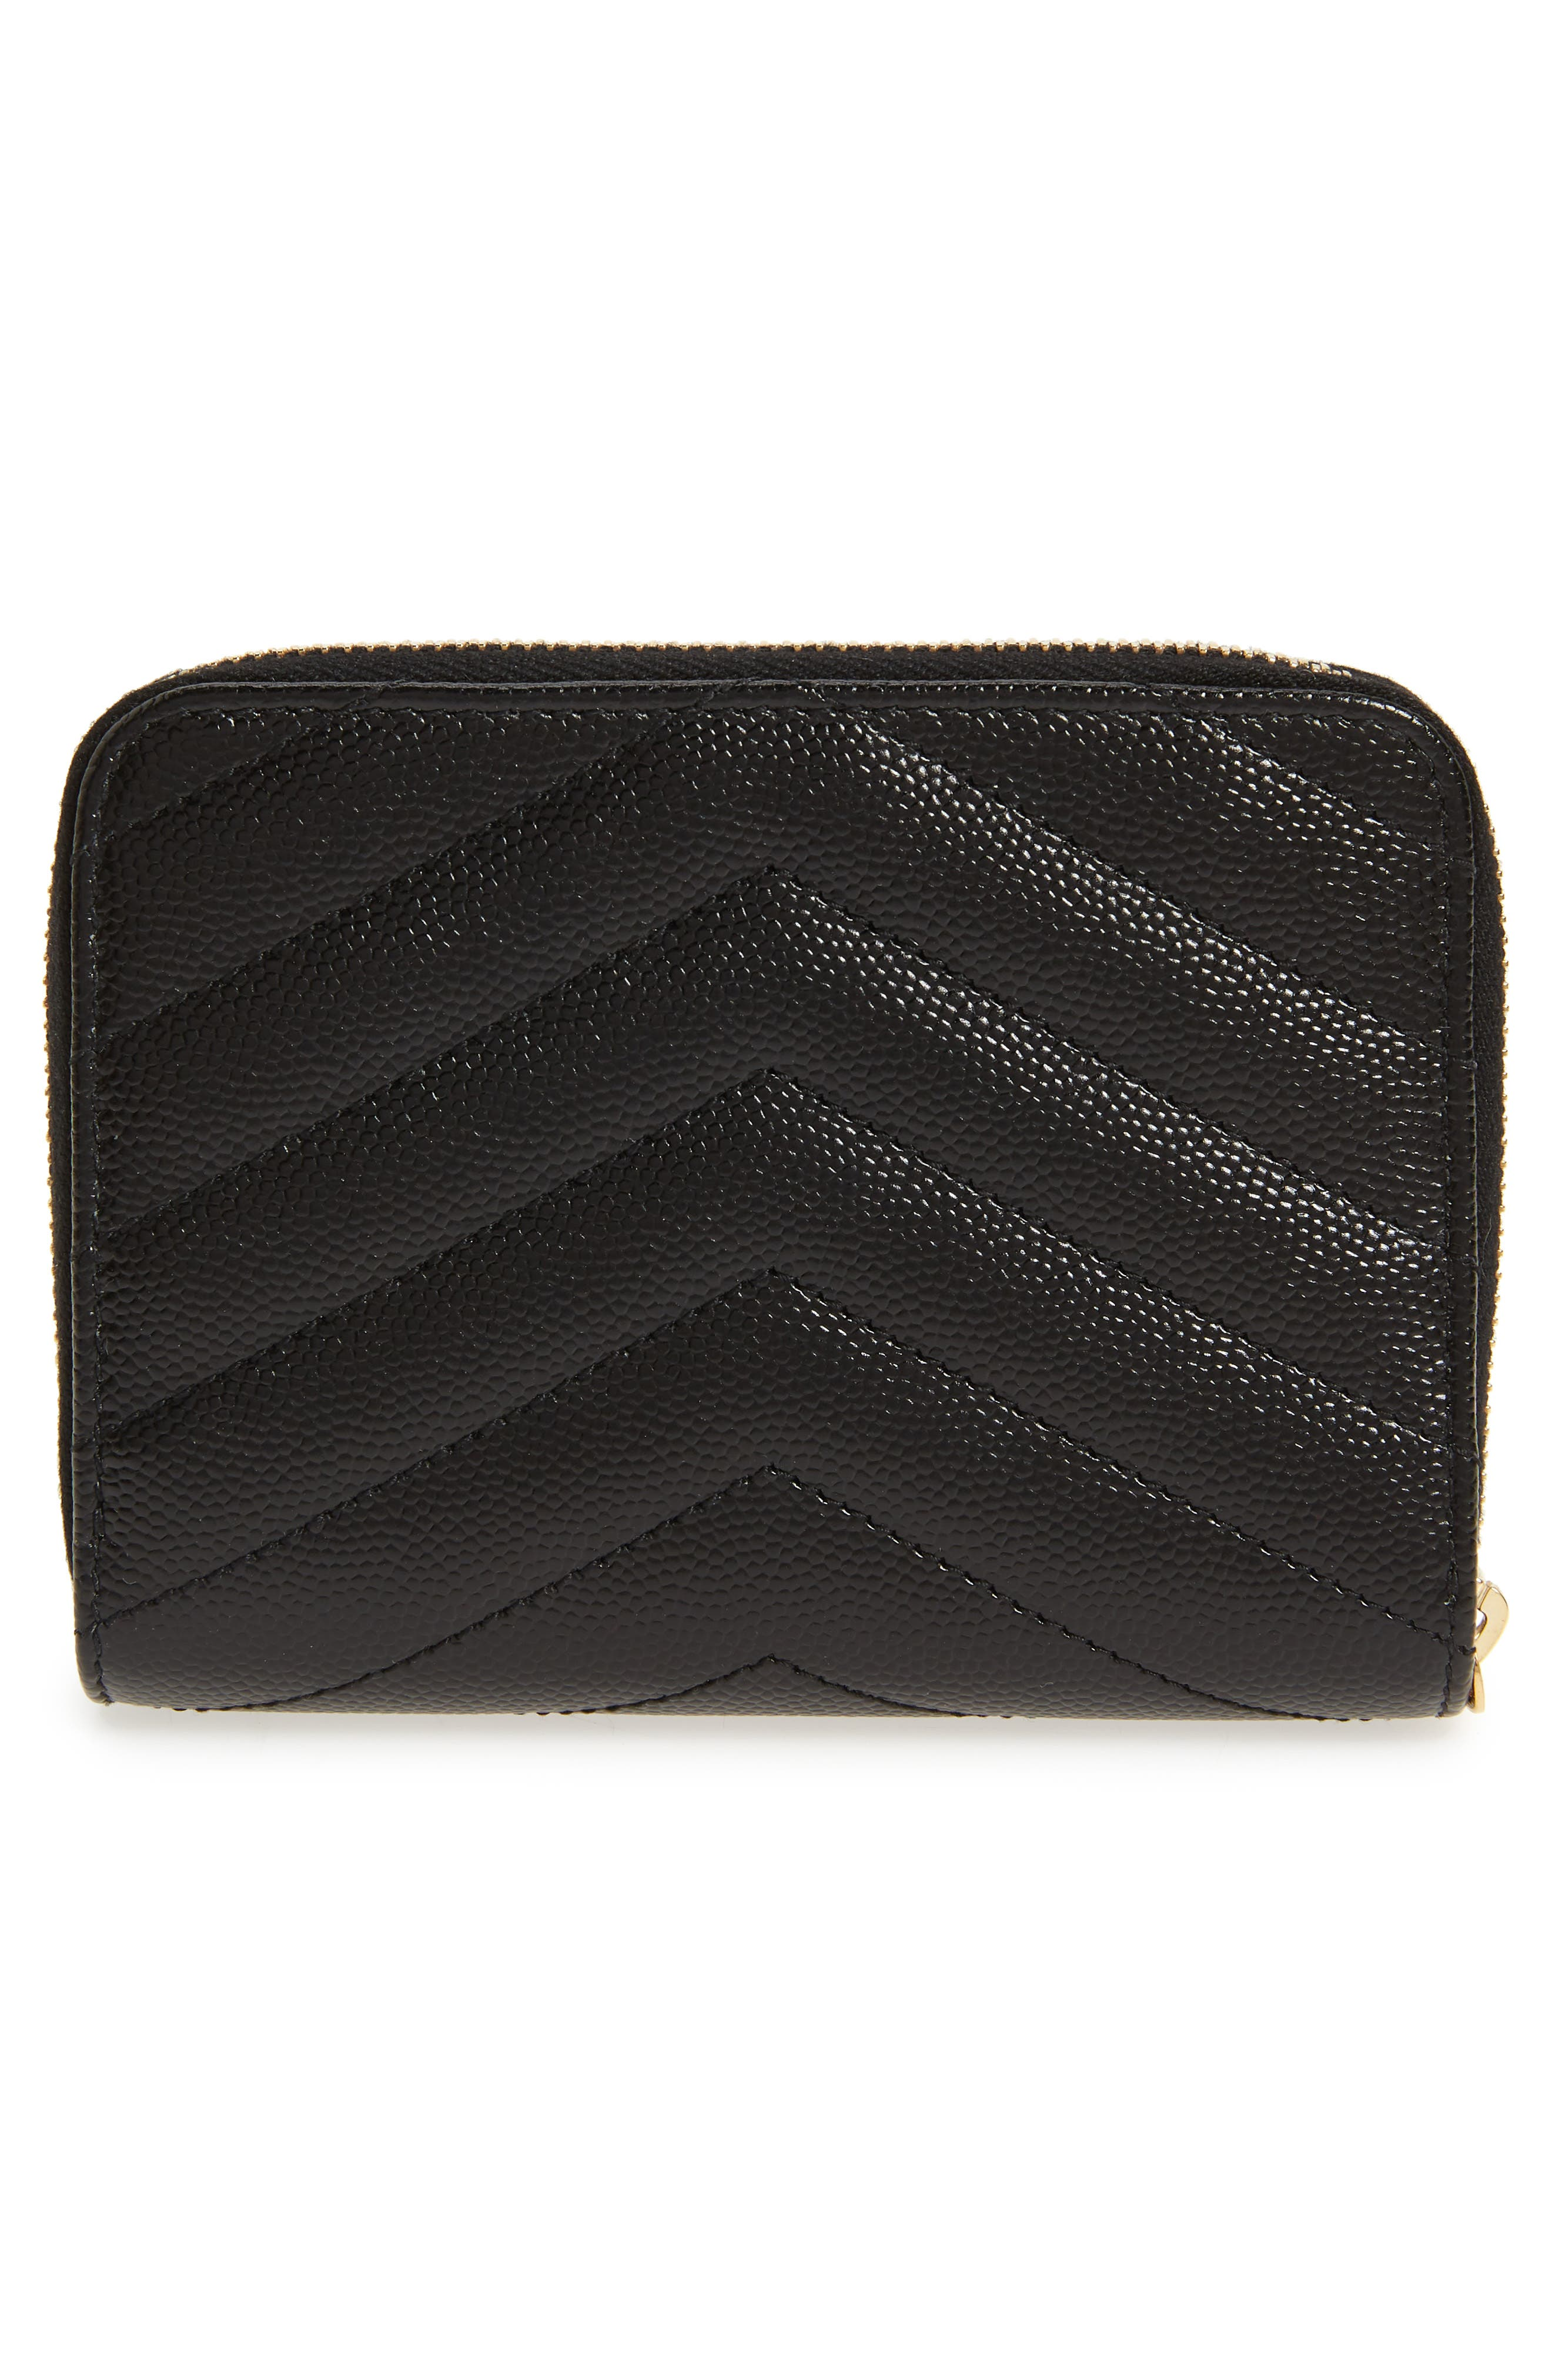 Monogramme Compact Quilted Zip Around Wallet,                             Alternate thumbnail 4, color,                             NOIR